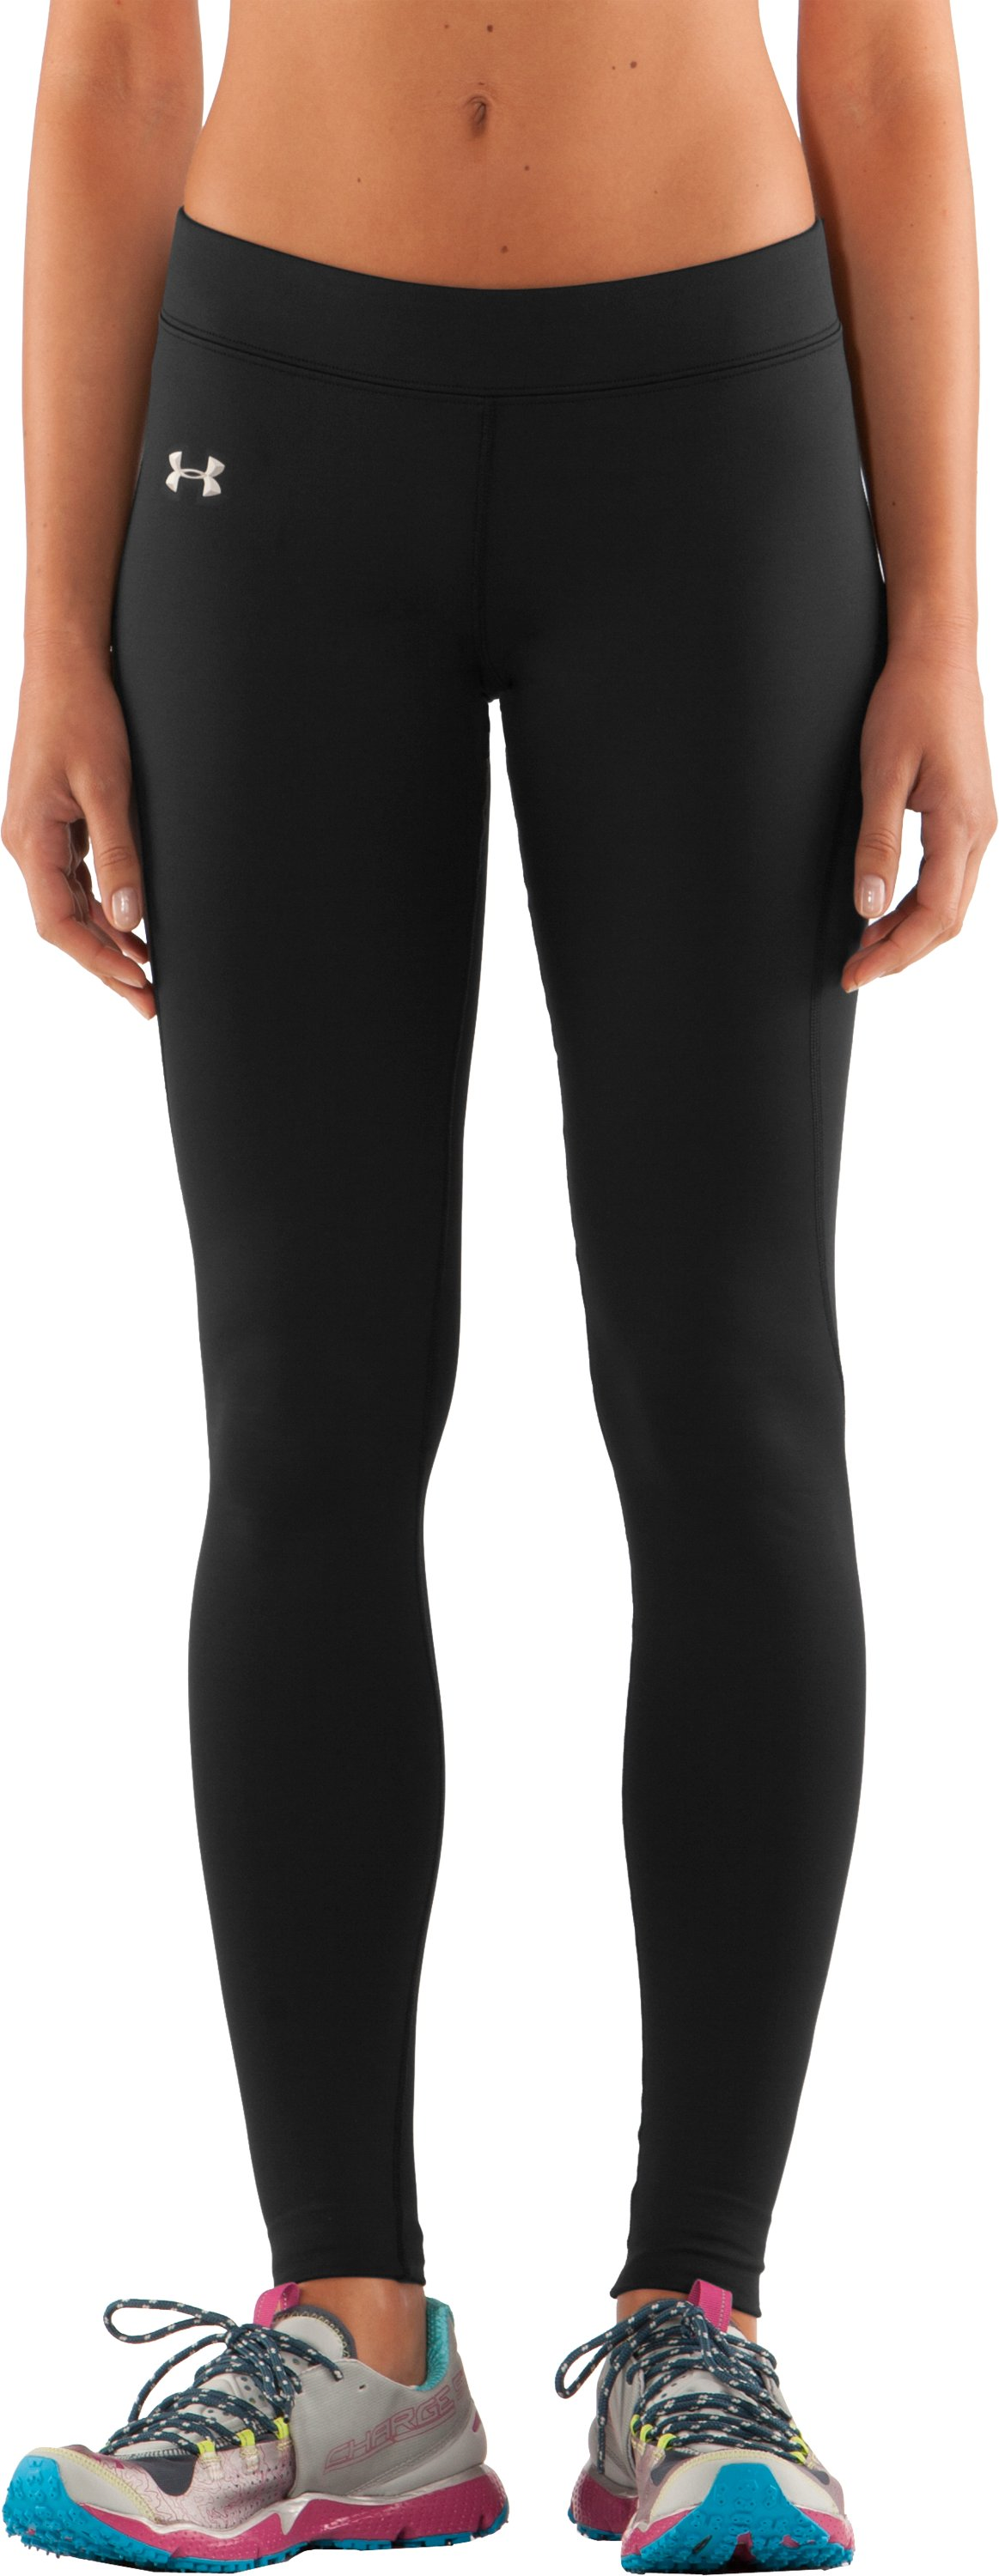 Women's ColdGear® Fitted Leggings, Black